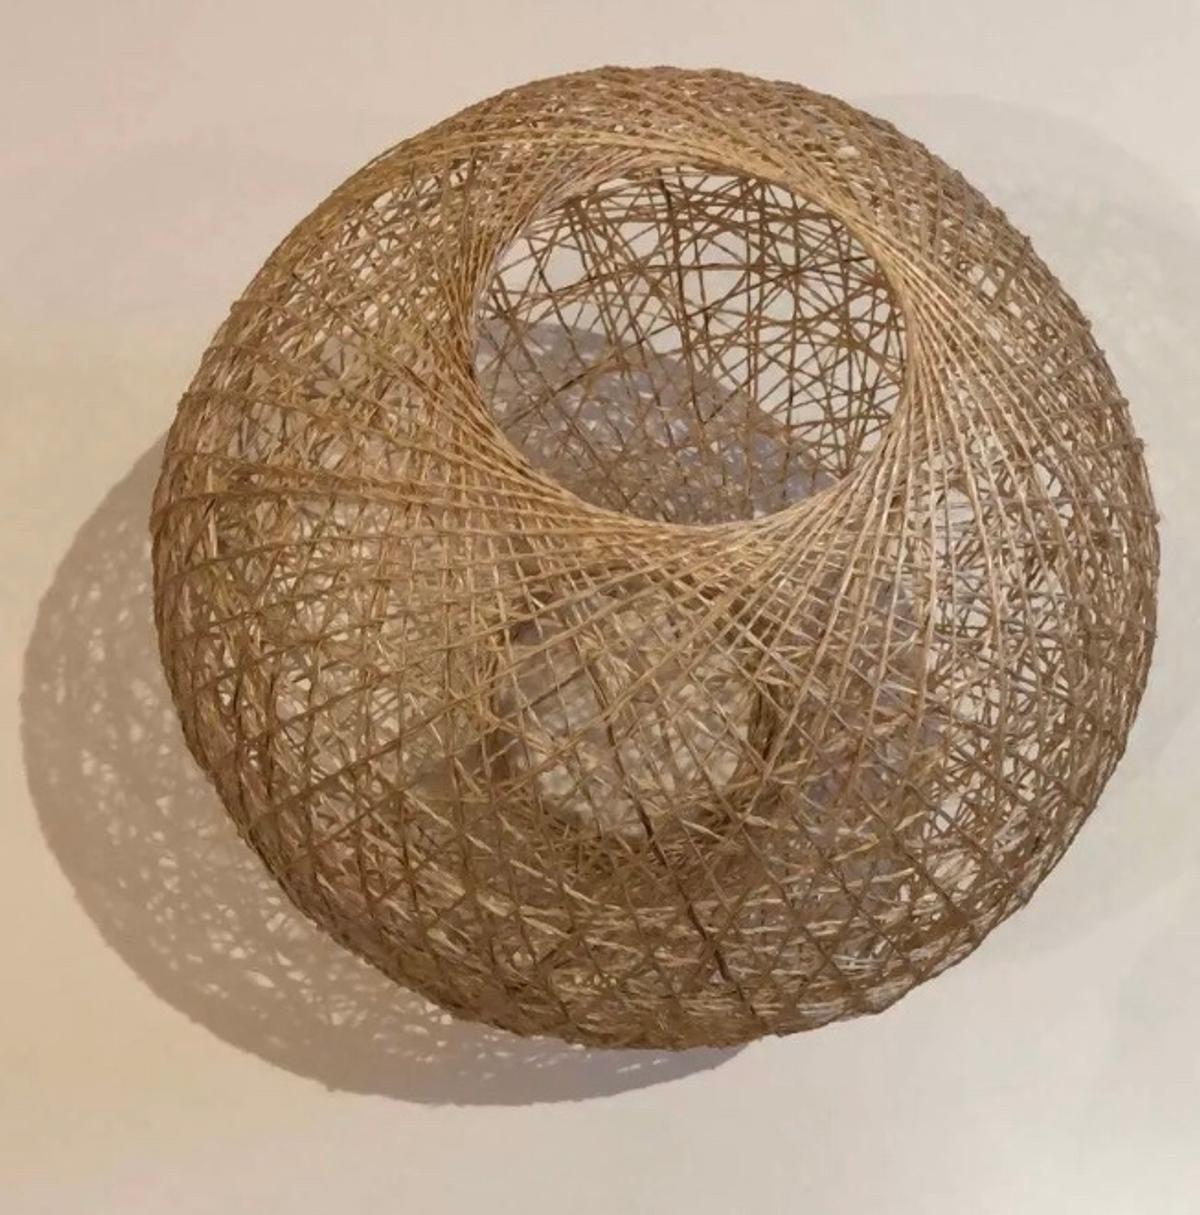 Rattan style pendant shades, like new, used for a very short period and in good condition. 24.5cm diameter.